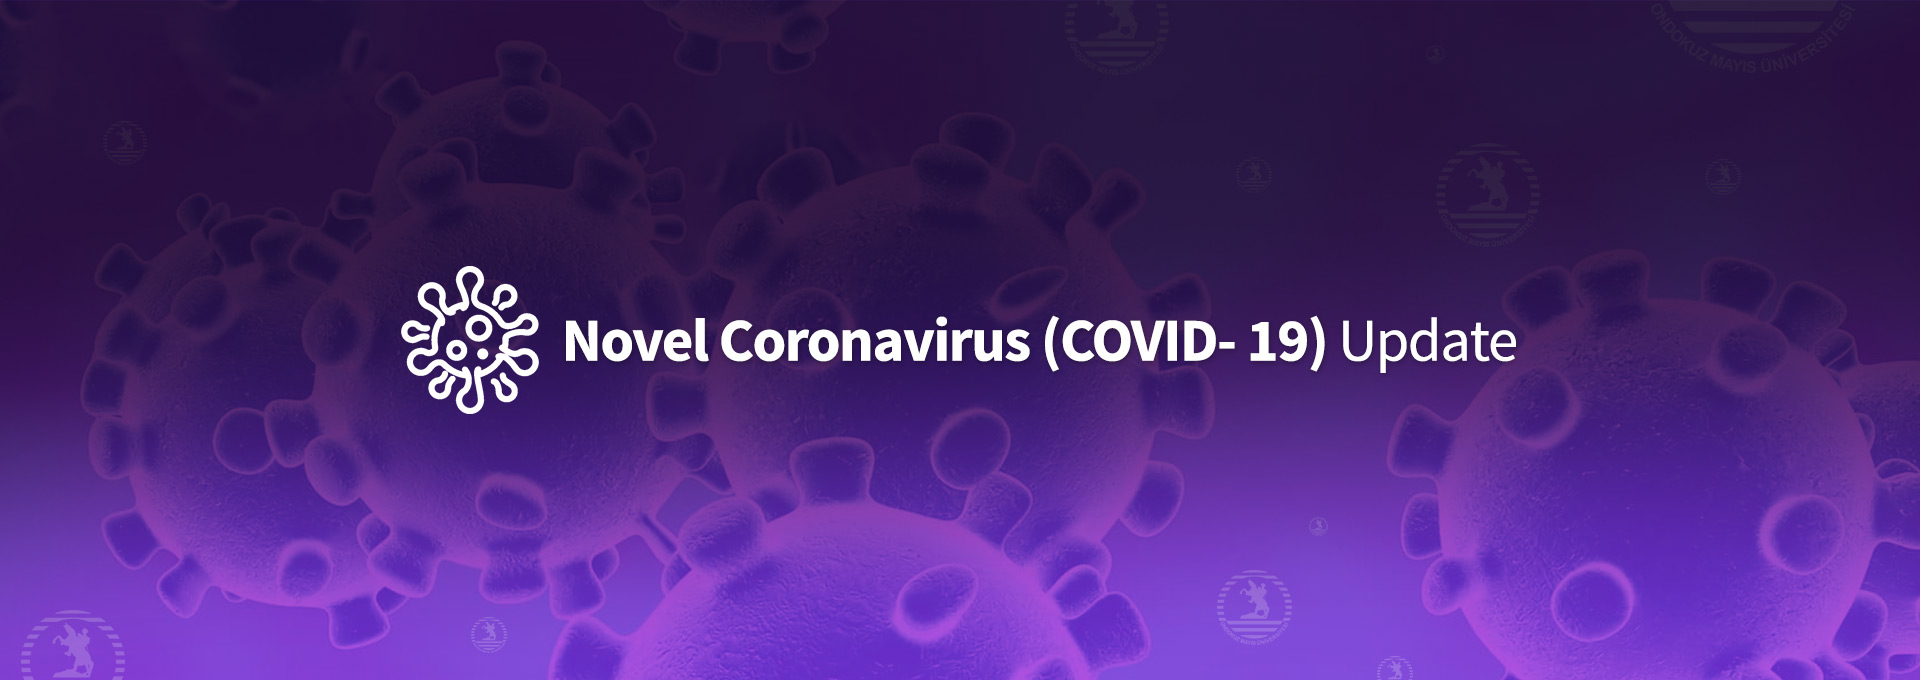 OMU Precautions against the Coronavirus Disease